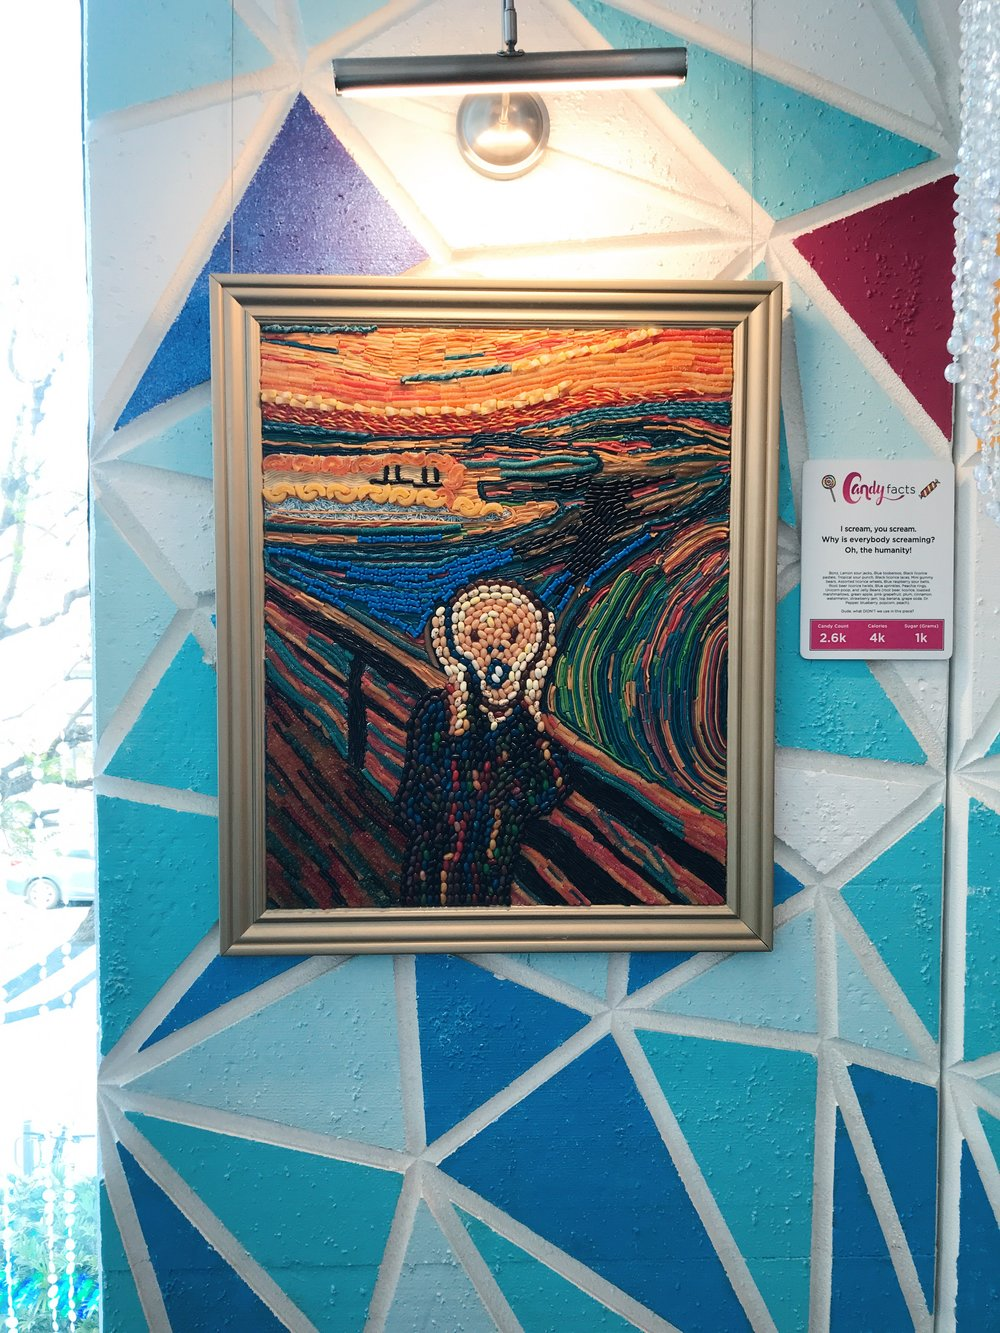 Candytopia Edvard Munch The Scream Painting